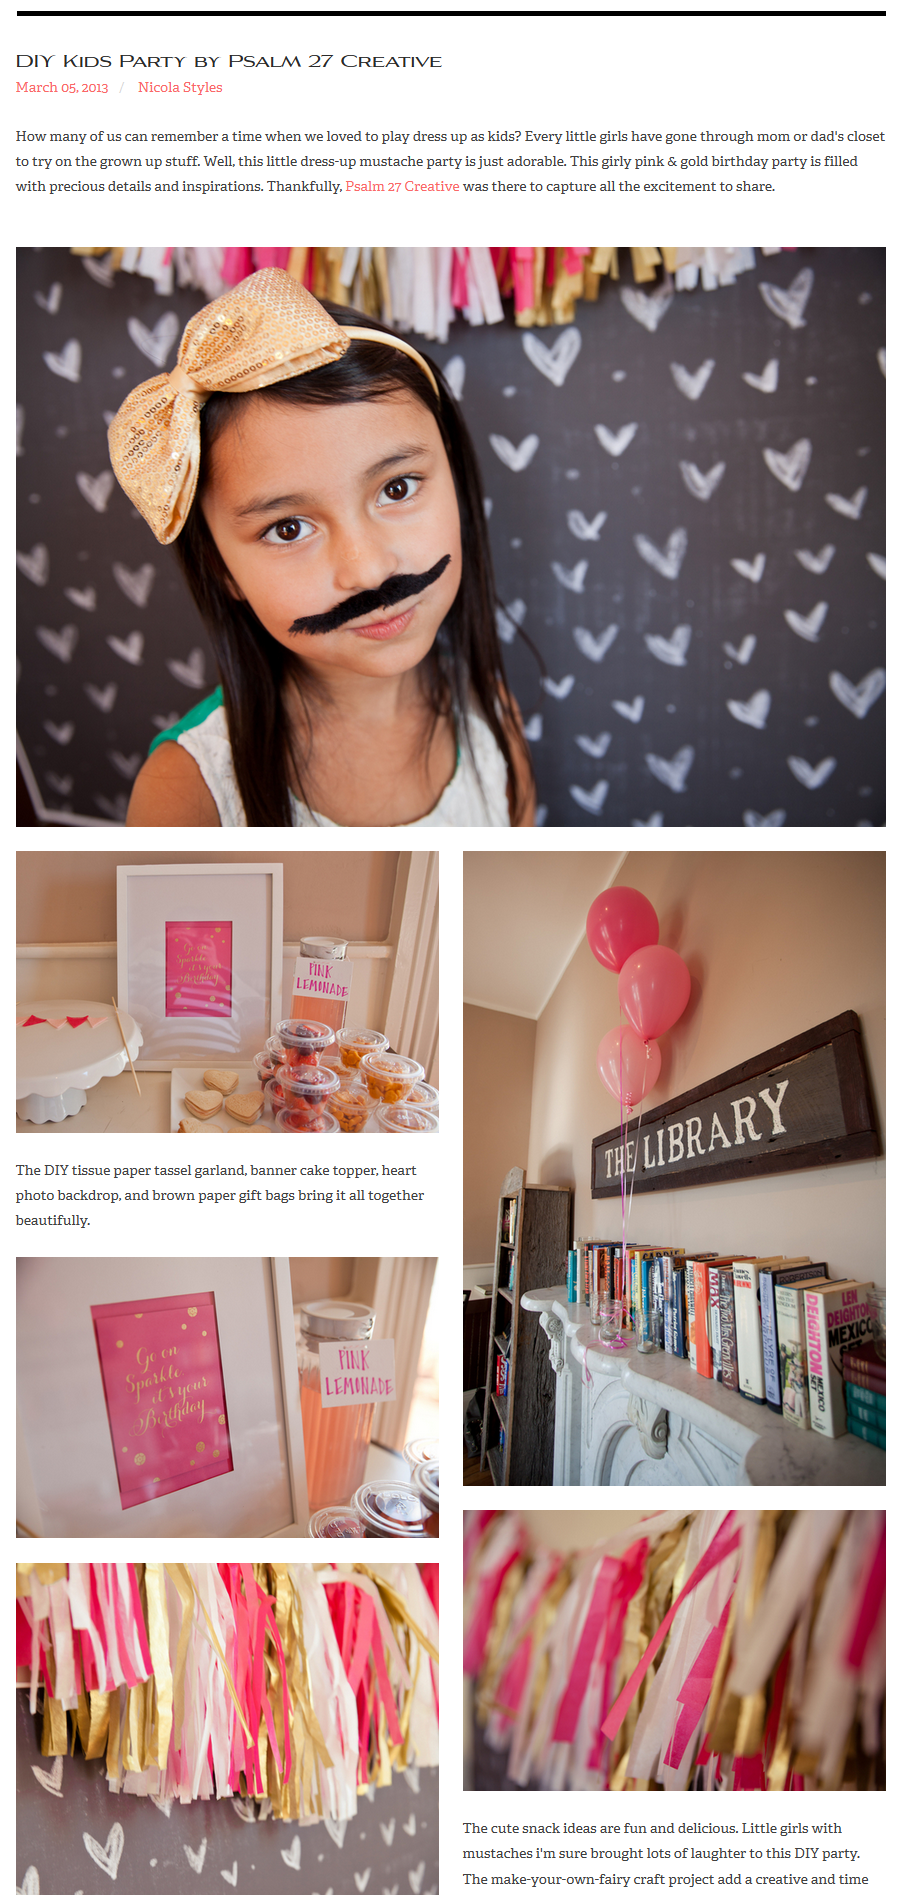 this little dress-up mustache party is just adorable. This girly pink & gold birthday party is filled with precious details and inspirations.